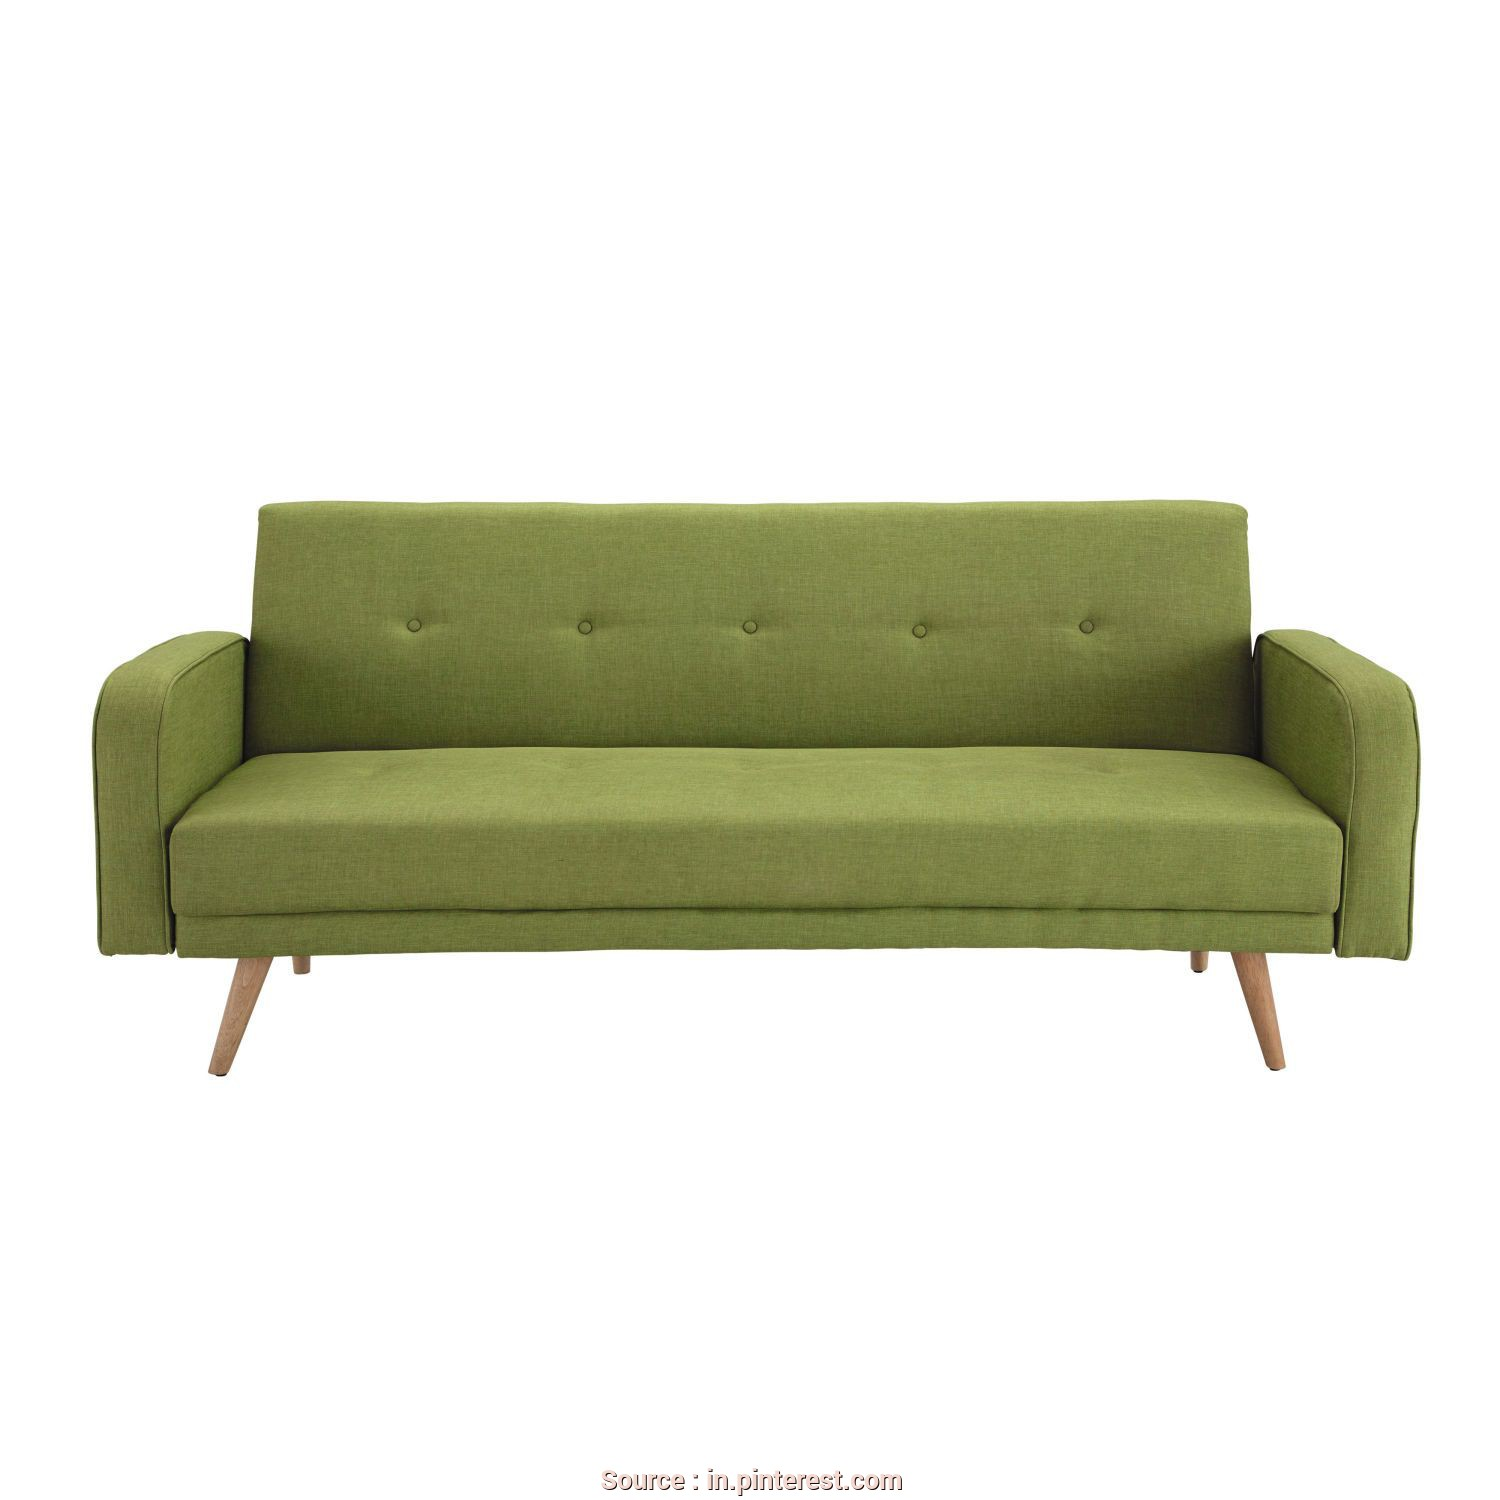 Divano Willy Maison Du Monde, Locale Lime Green 3-Seater Clic Clac Sofa, Broadway On Maisons Du Monde. Take